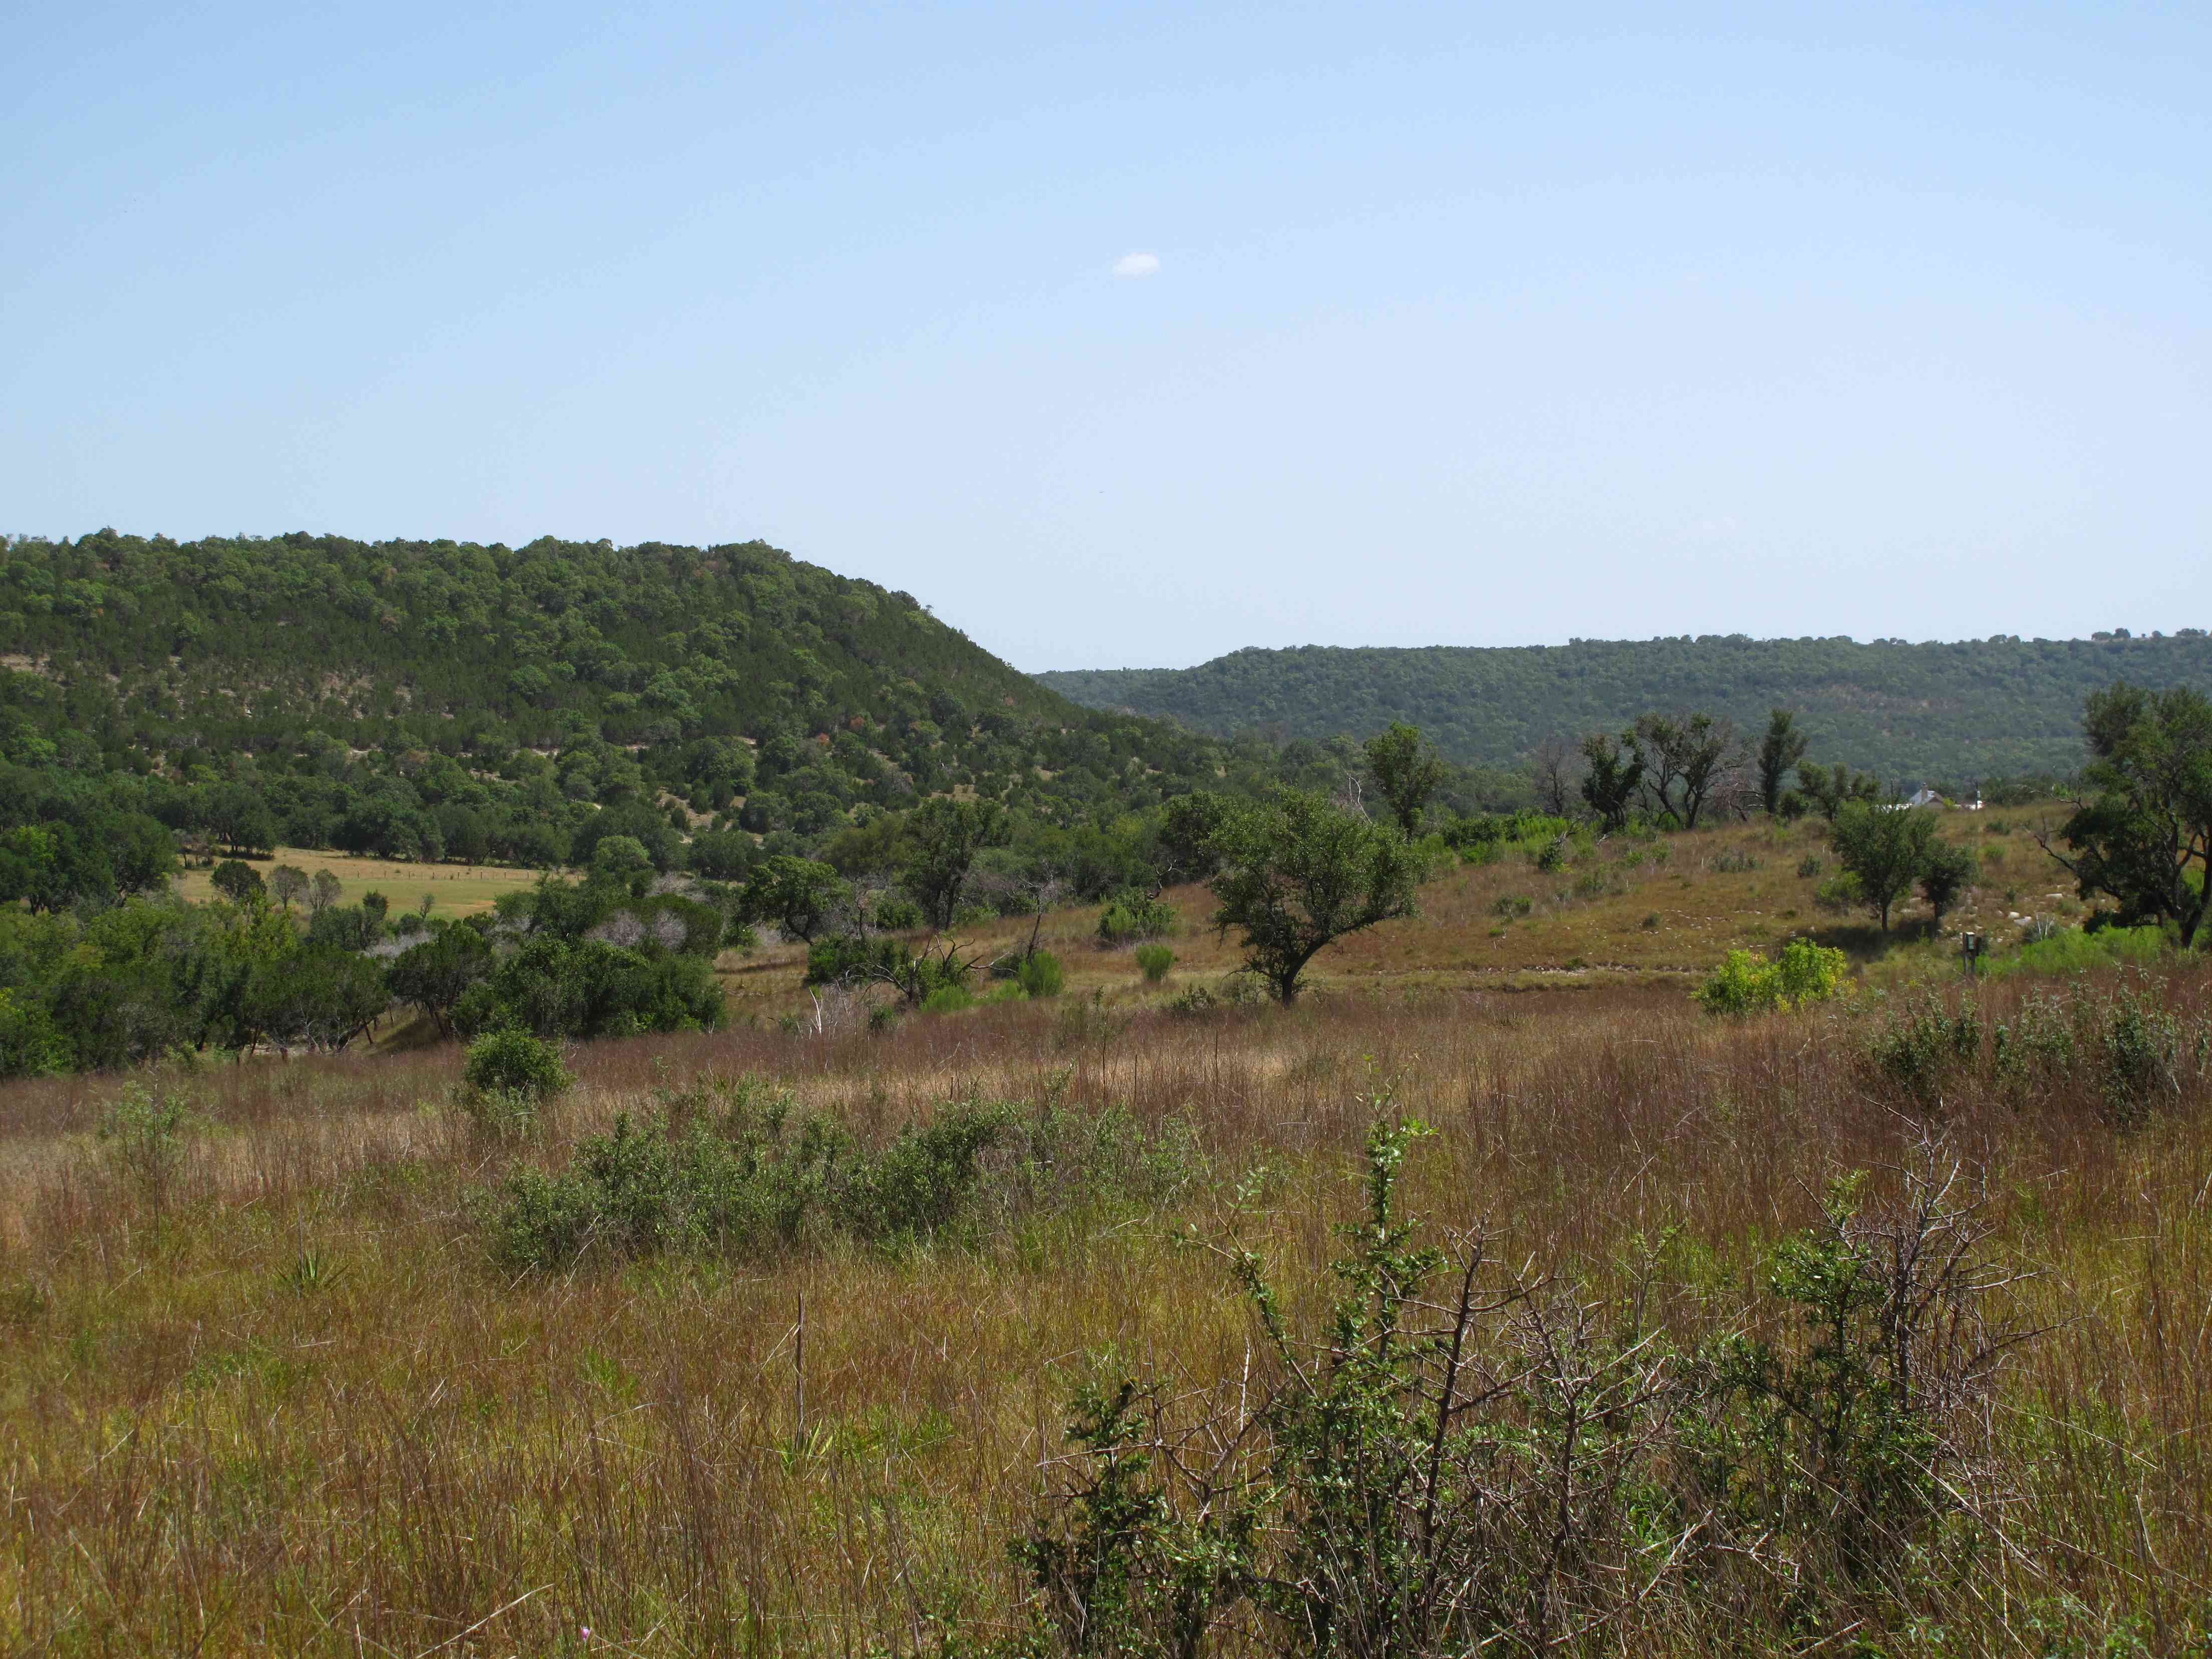 A view of the Balcones Canyonlands National Wildlife Refuge,